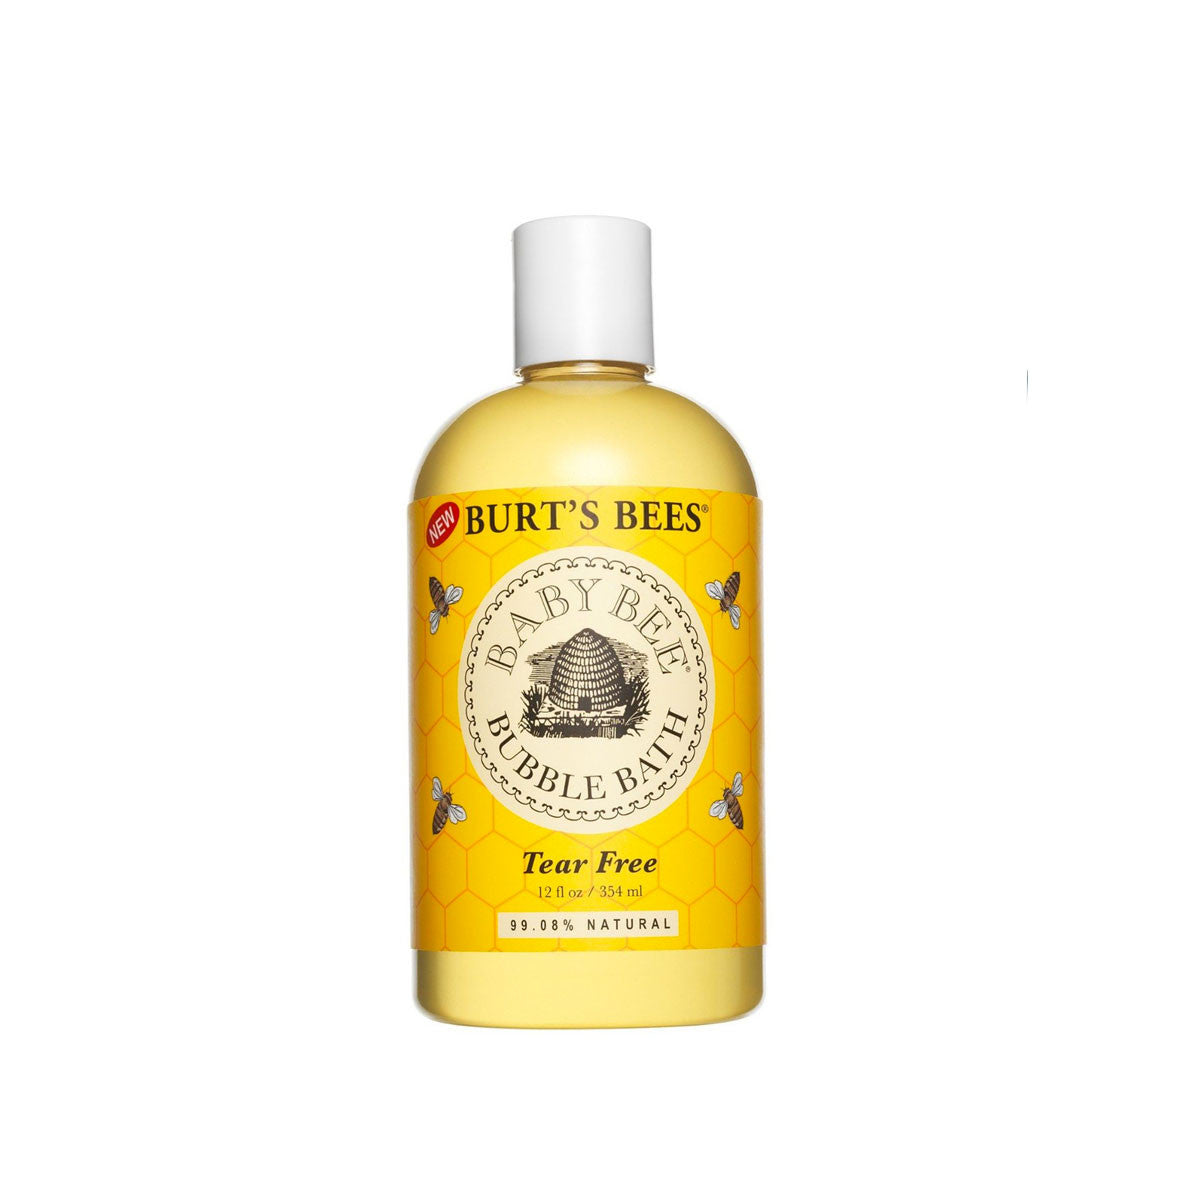 Burts Bees Bubble Bath Burts Bees Bath and Body at Little Earth Nest Eco Shop